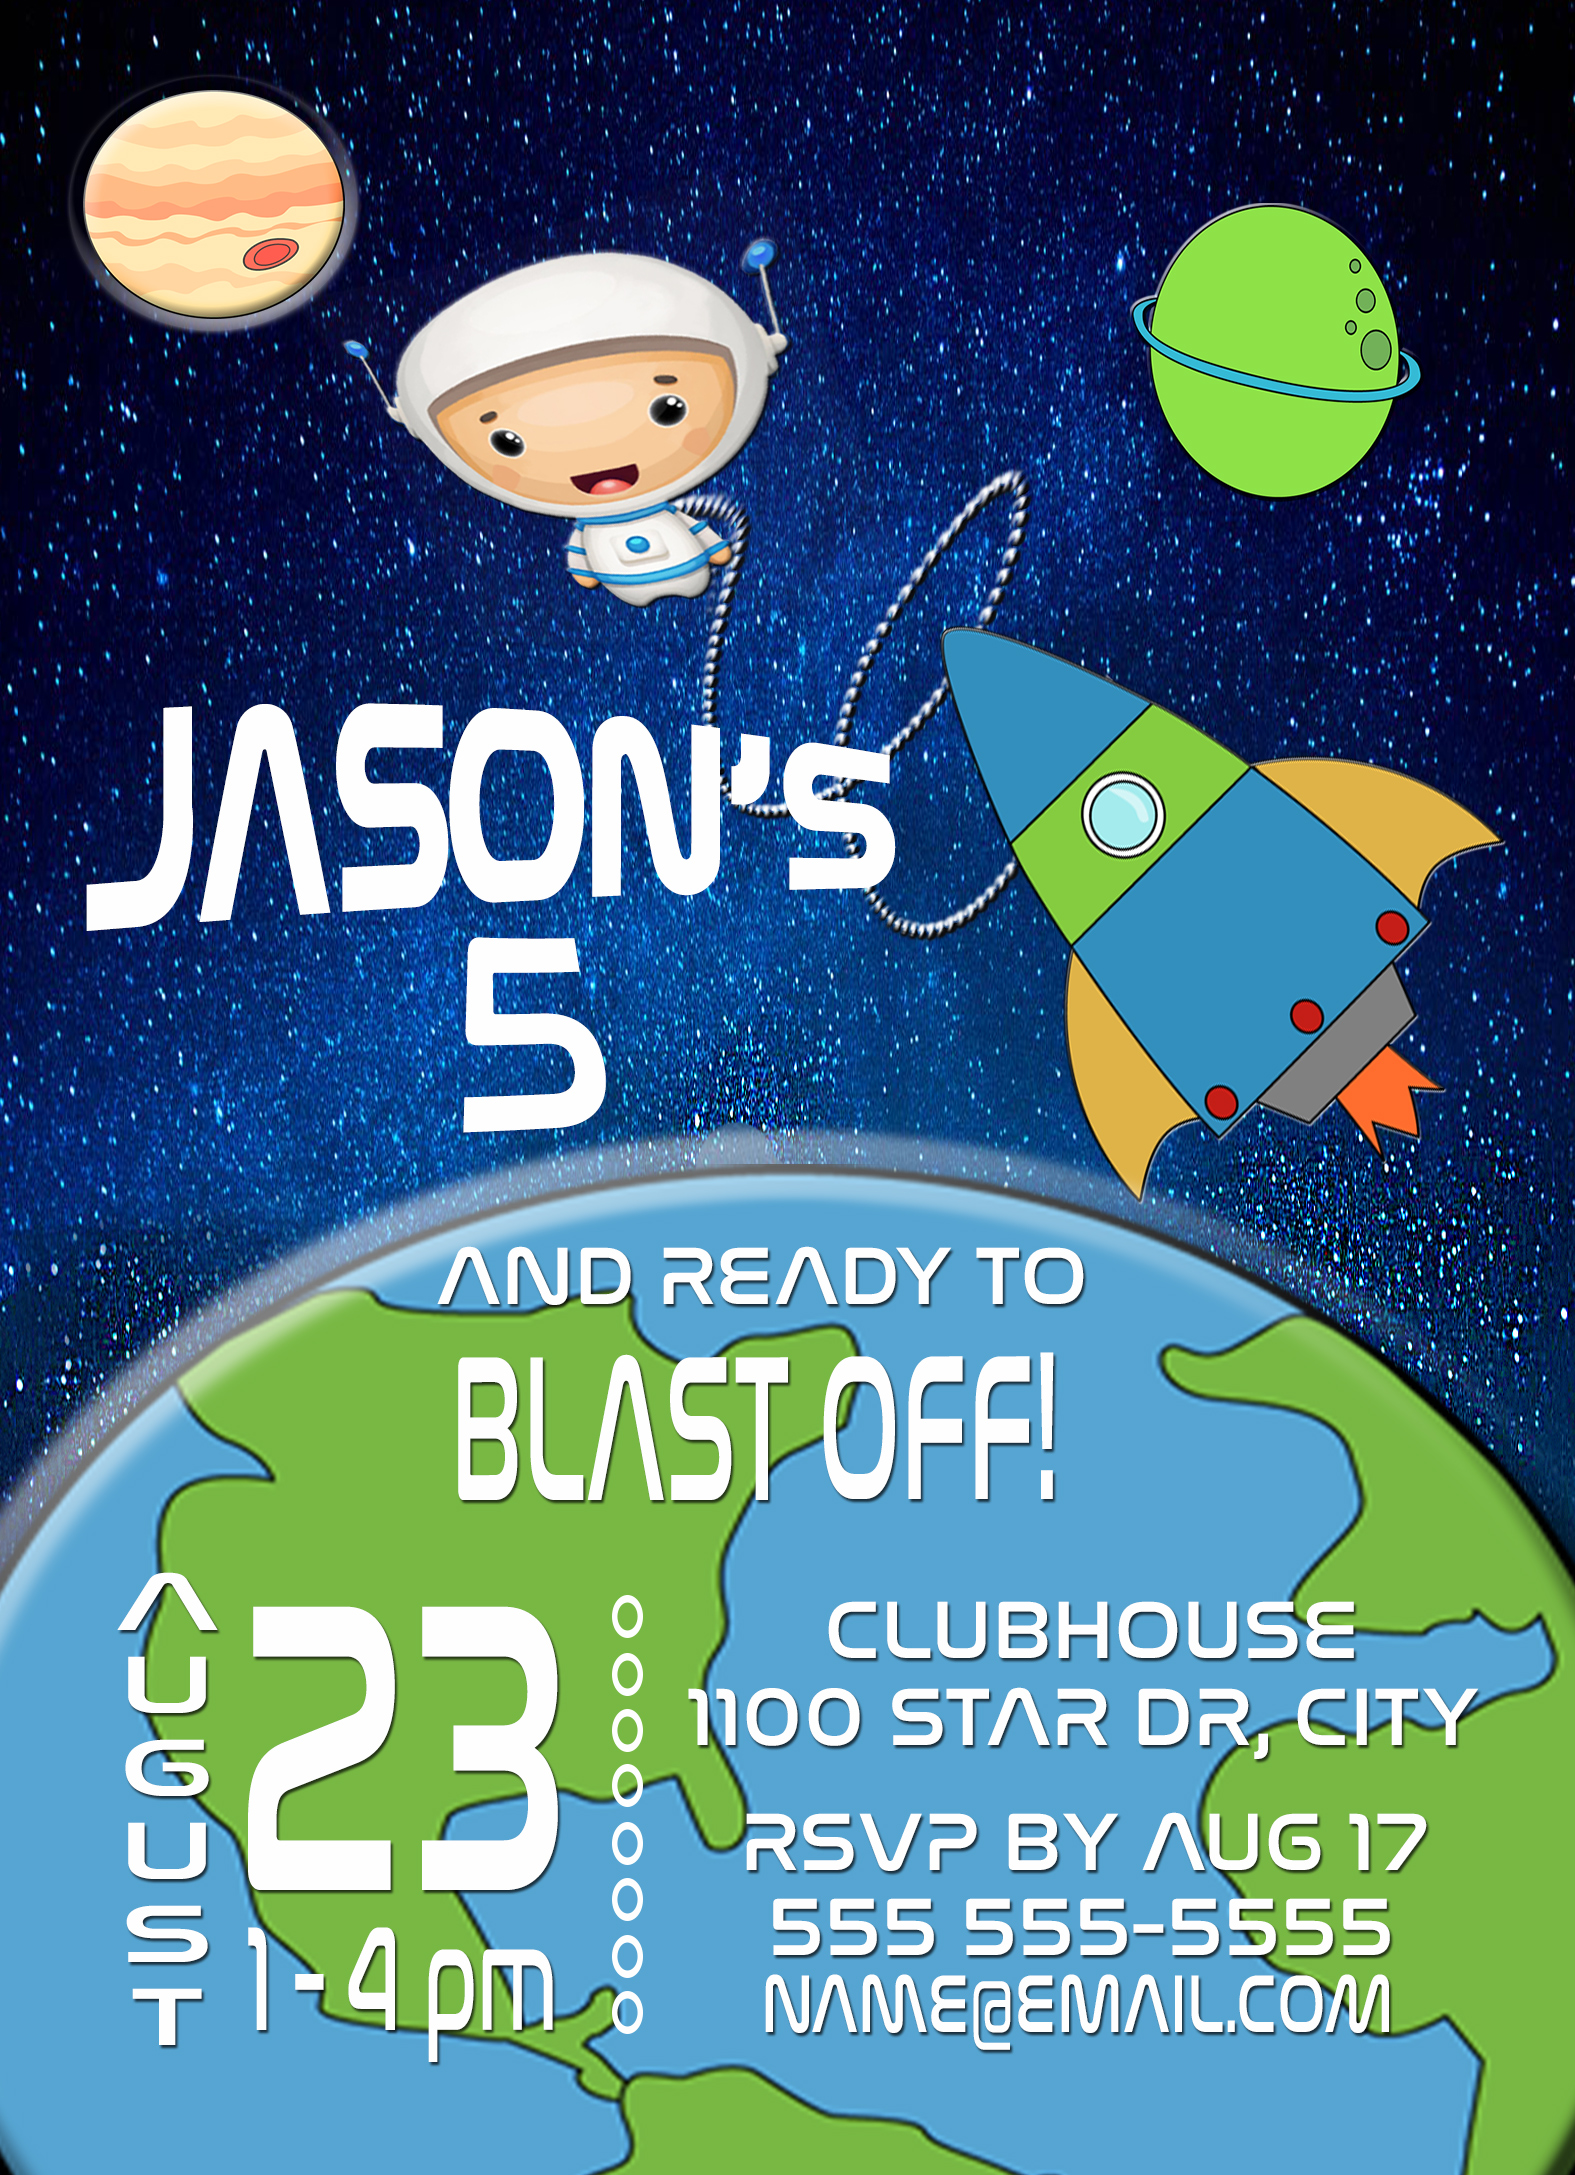 Space Rocket Spaceship Personalized Birthday Invitation 1 Sided Card Party From SCG Designs